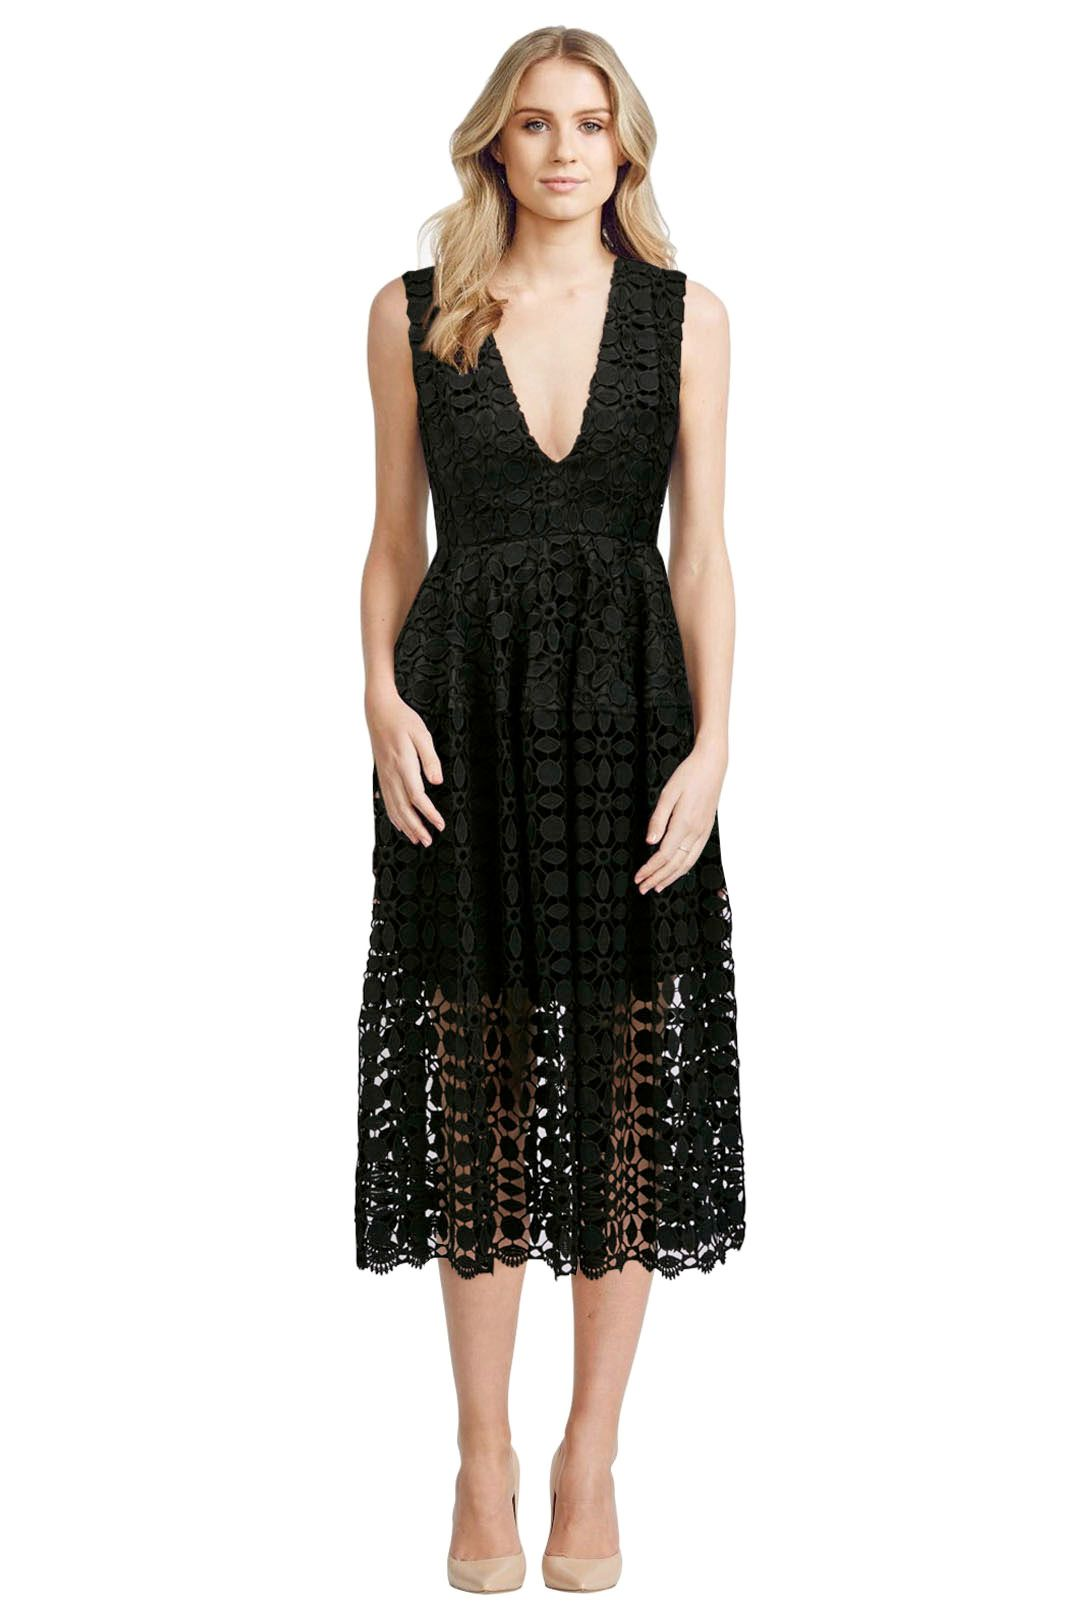 Mosaic Lace Ball Dress - Black - Front